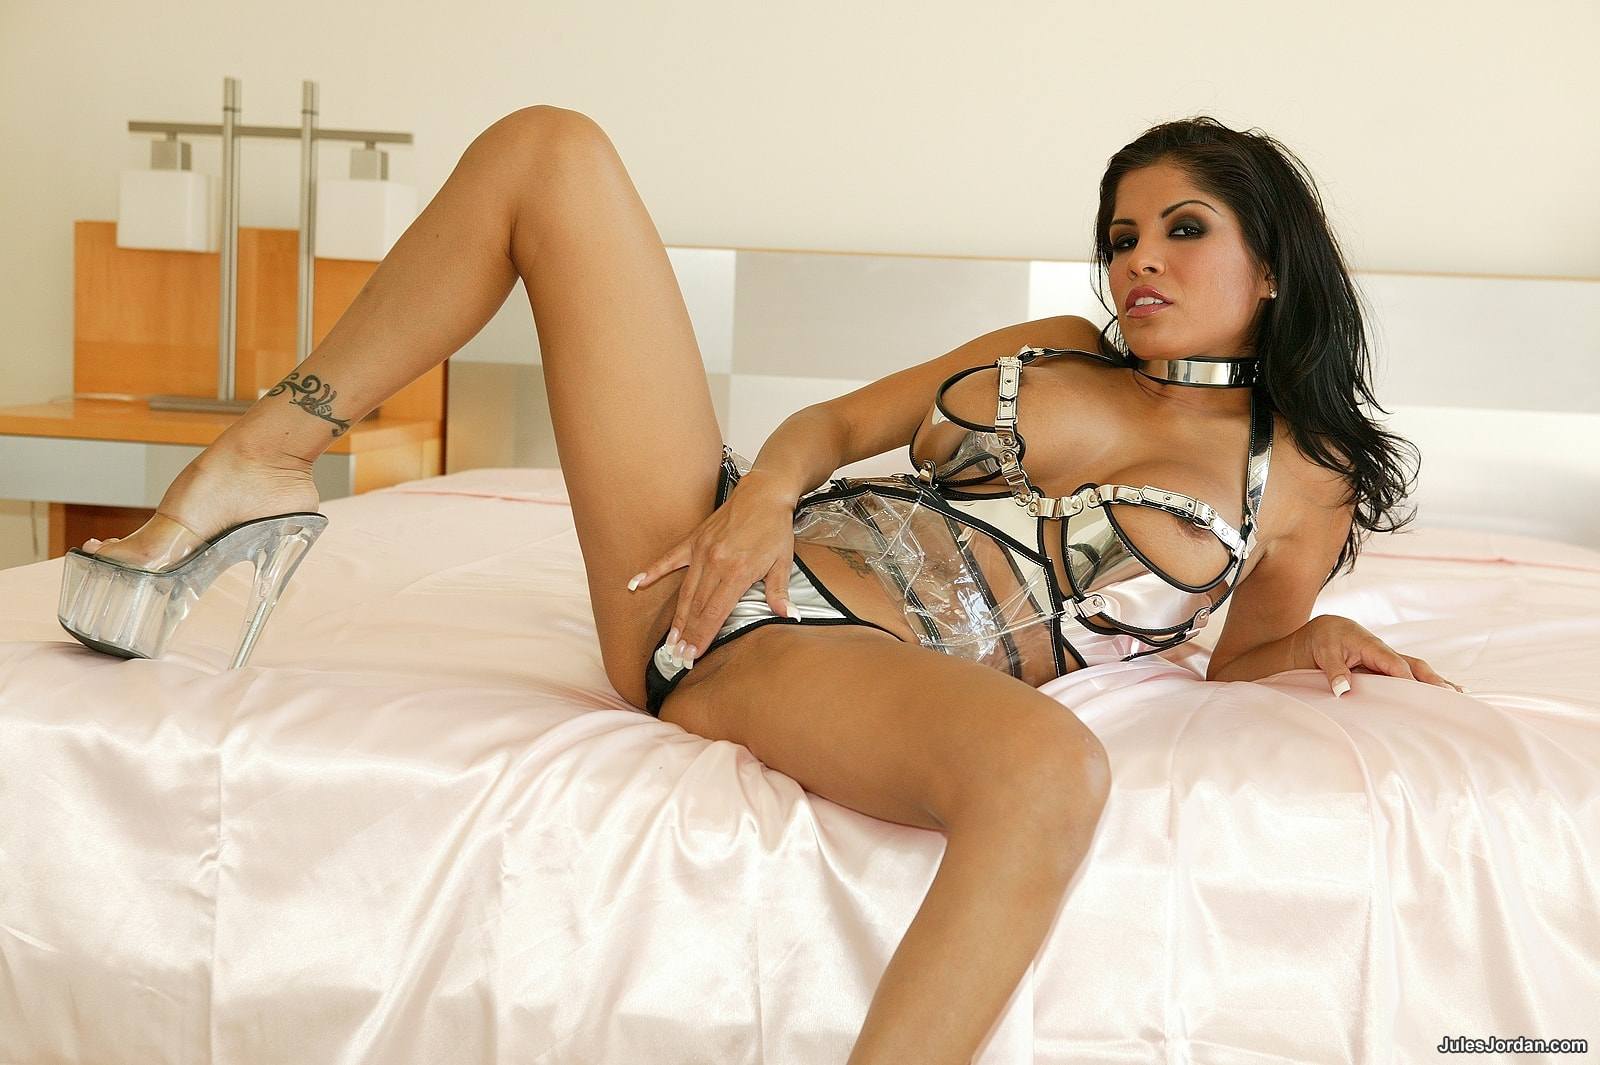 Jules Jordan 'DP With 3 Cocks' starring Alexis Amore (Photo 35)